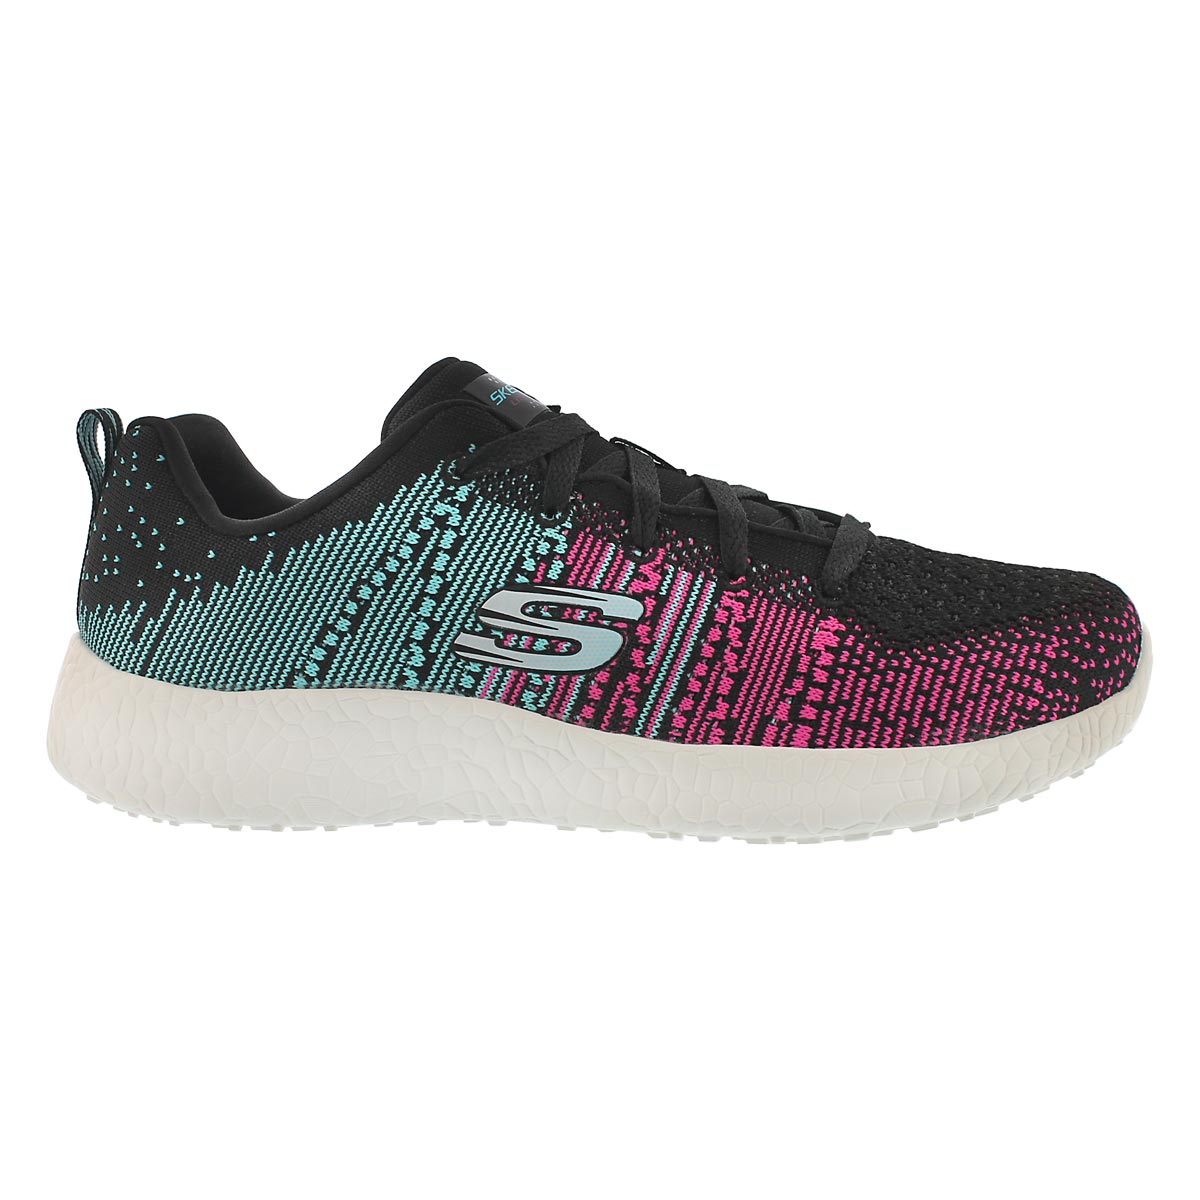 Lds Ellipse blk/mlt lace up running shoe